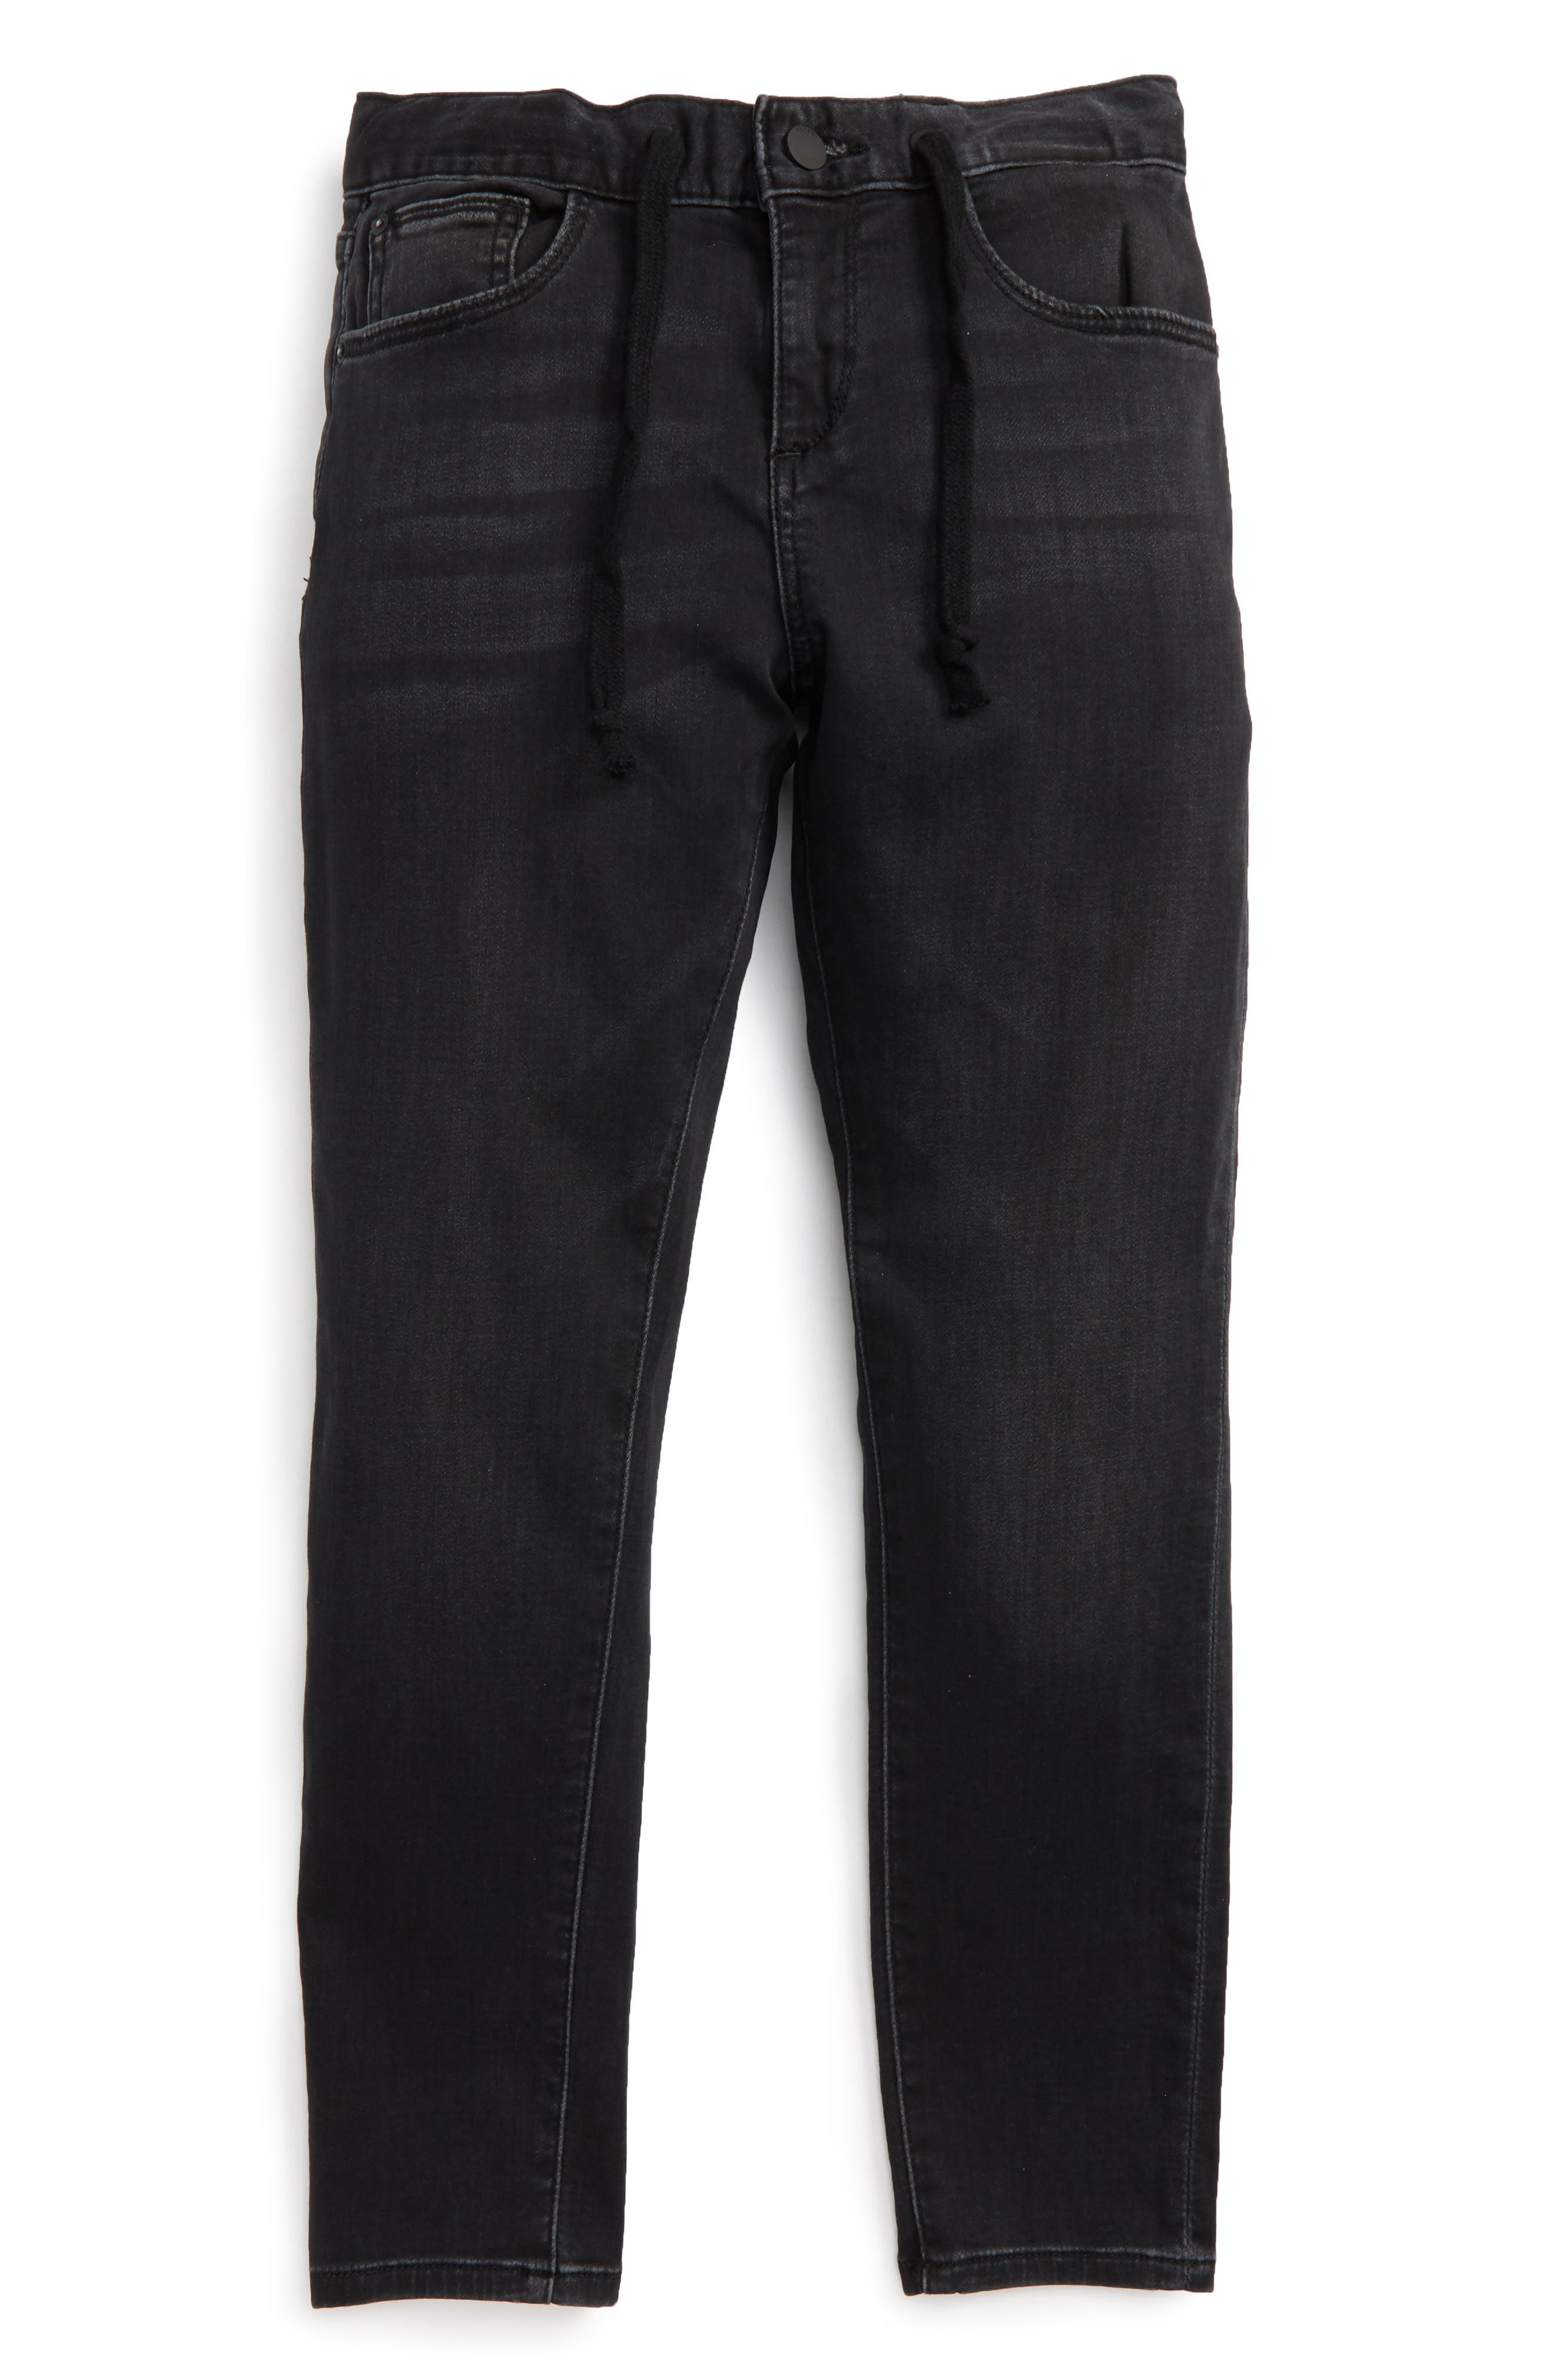 Alternate Image 1 Selected - DL1961 William Straight Leg Jeans (Big Boys)